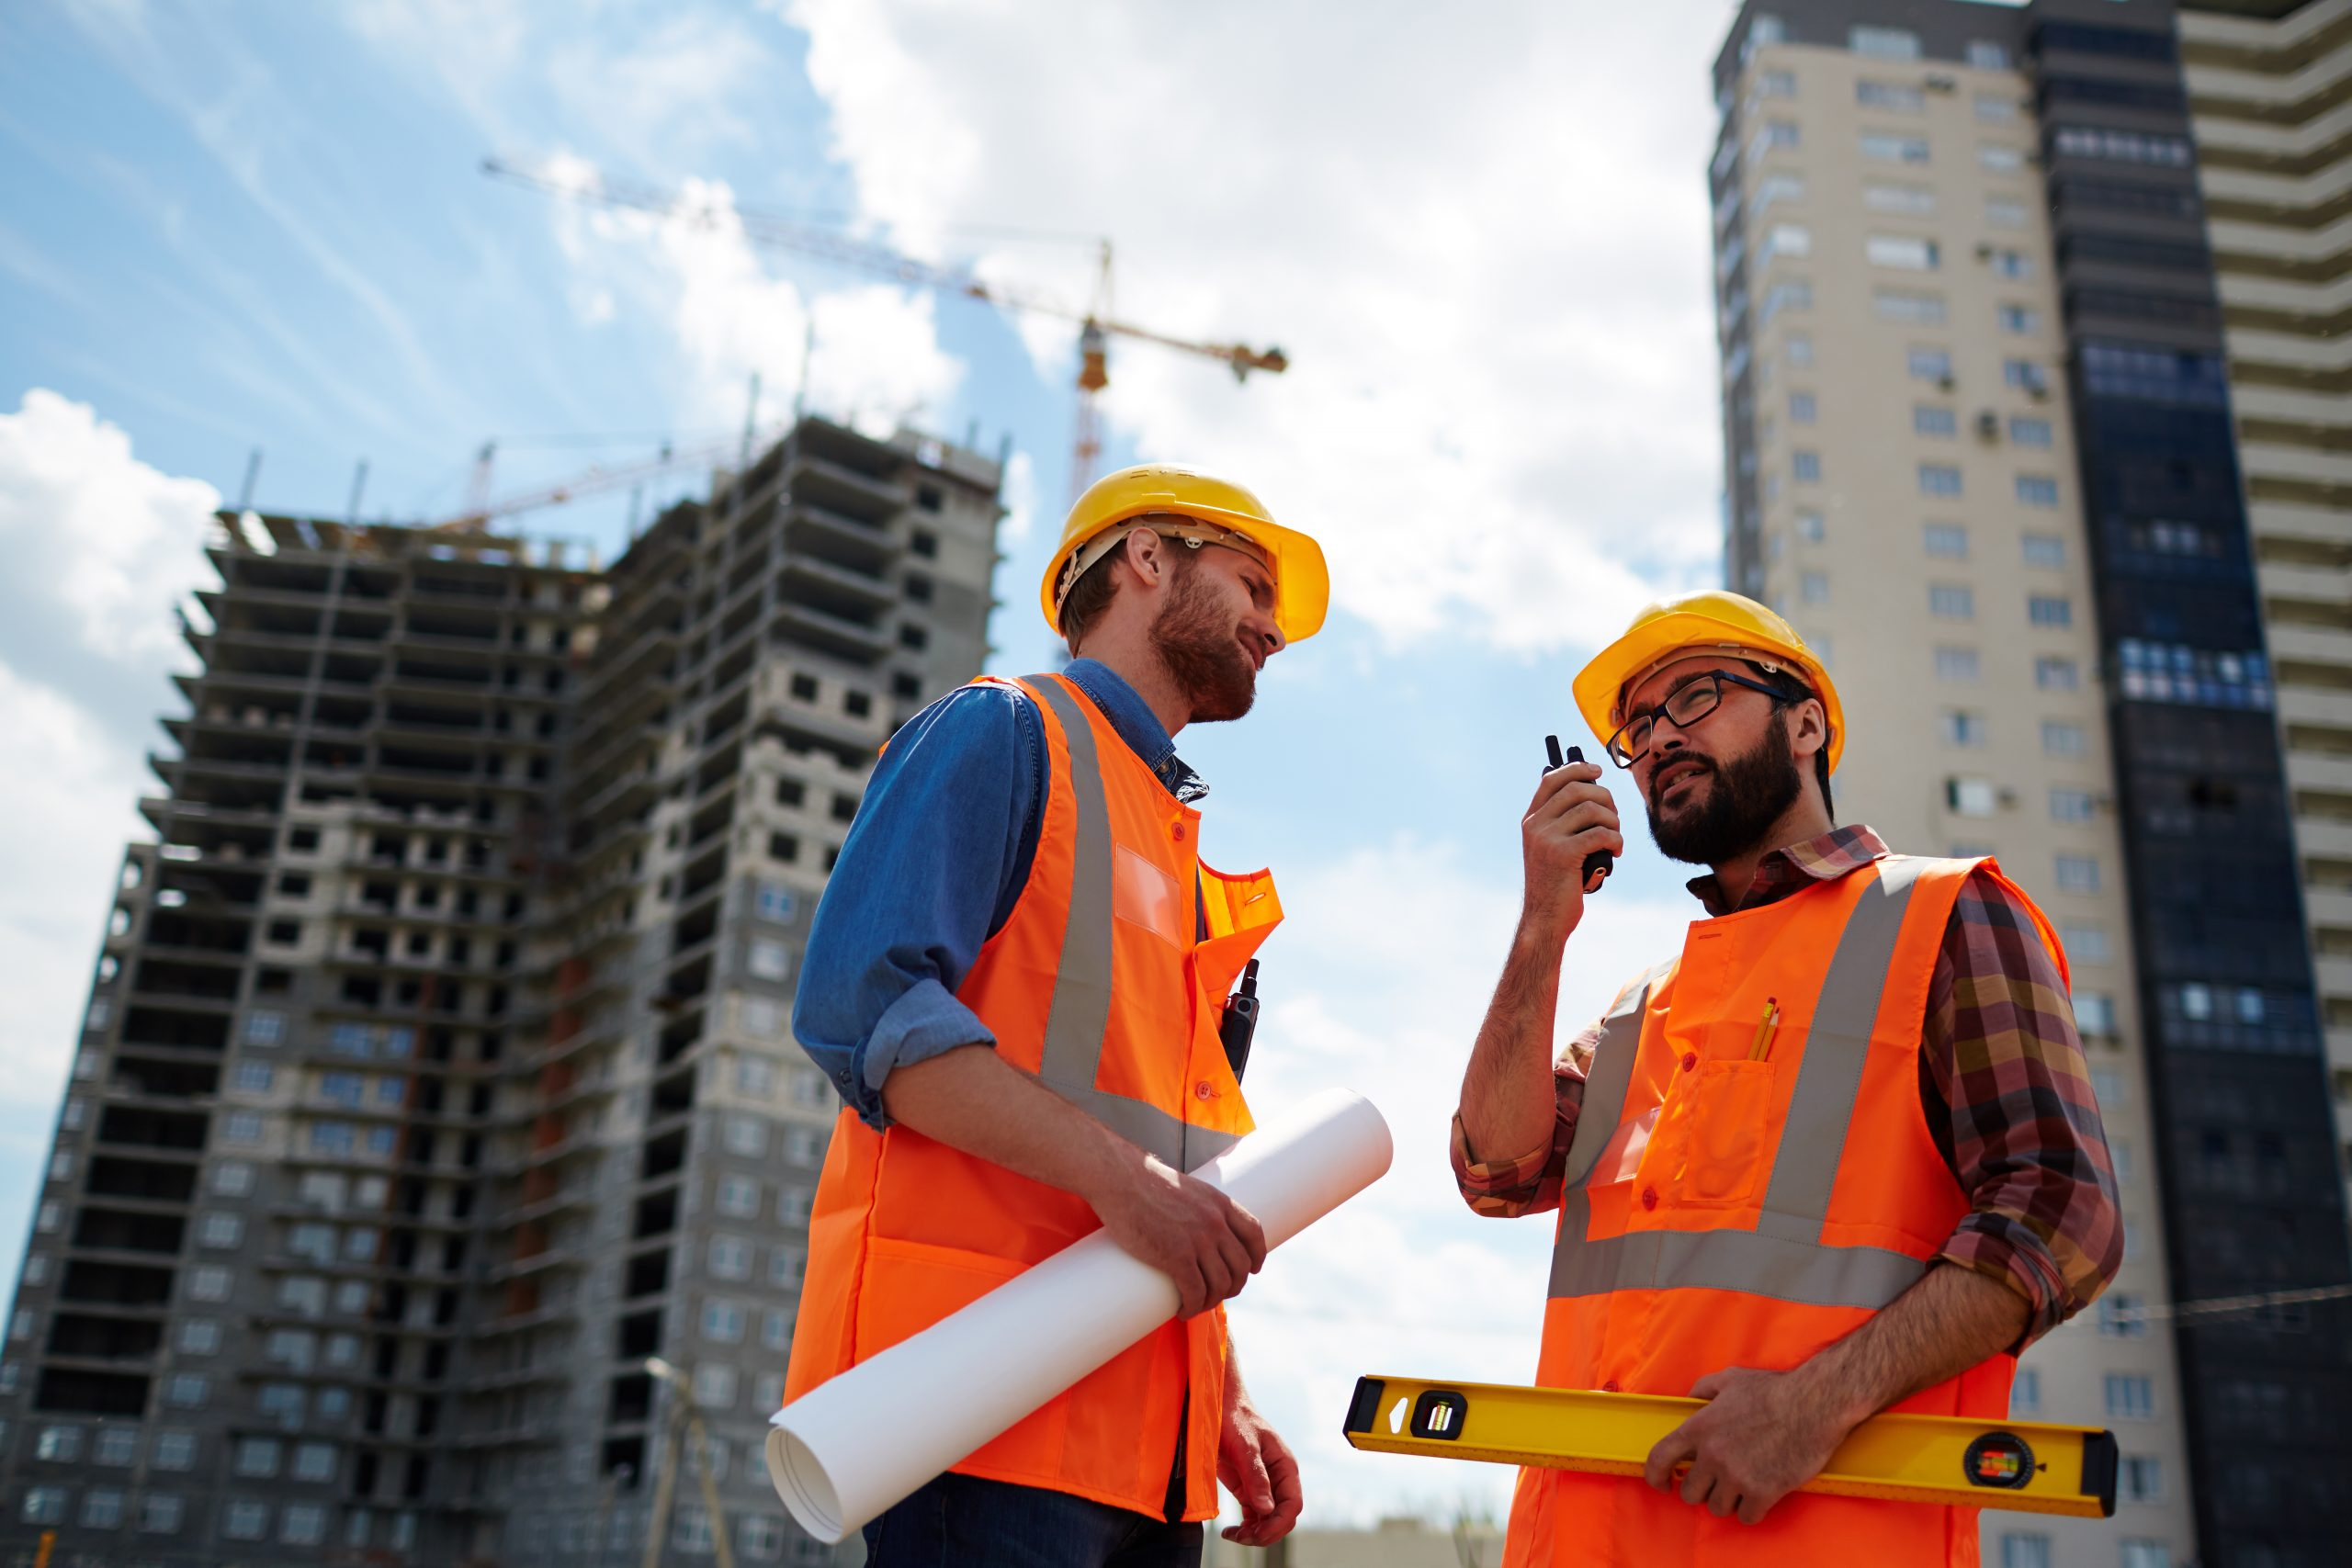 Contractor speaking on walkie-talkie with co-worker near by